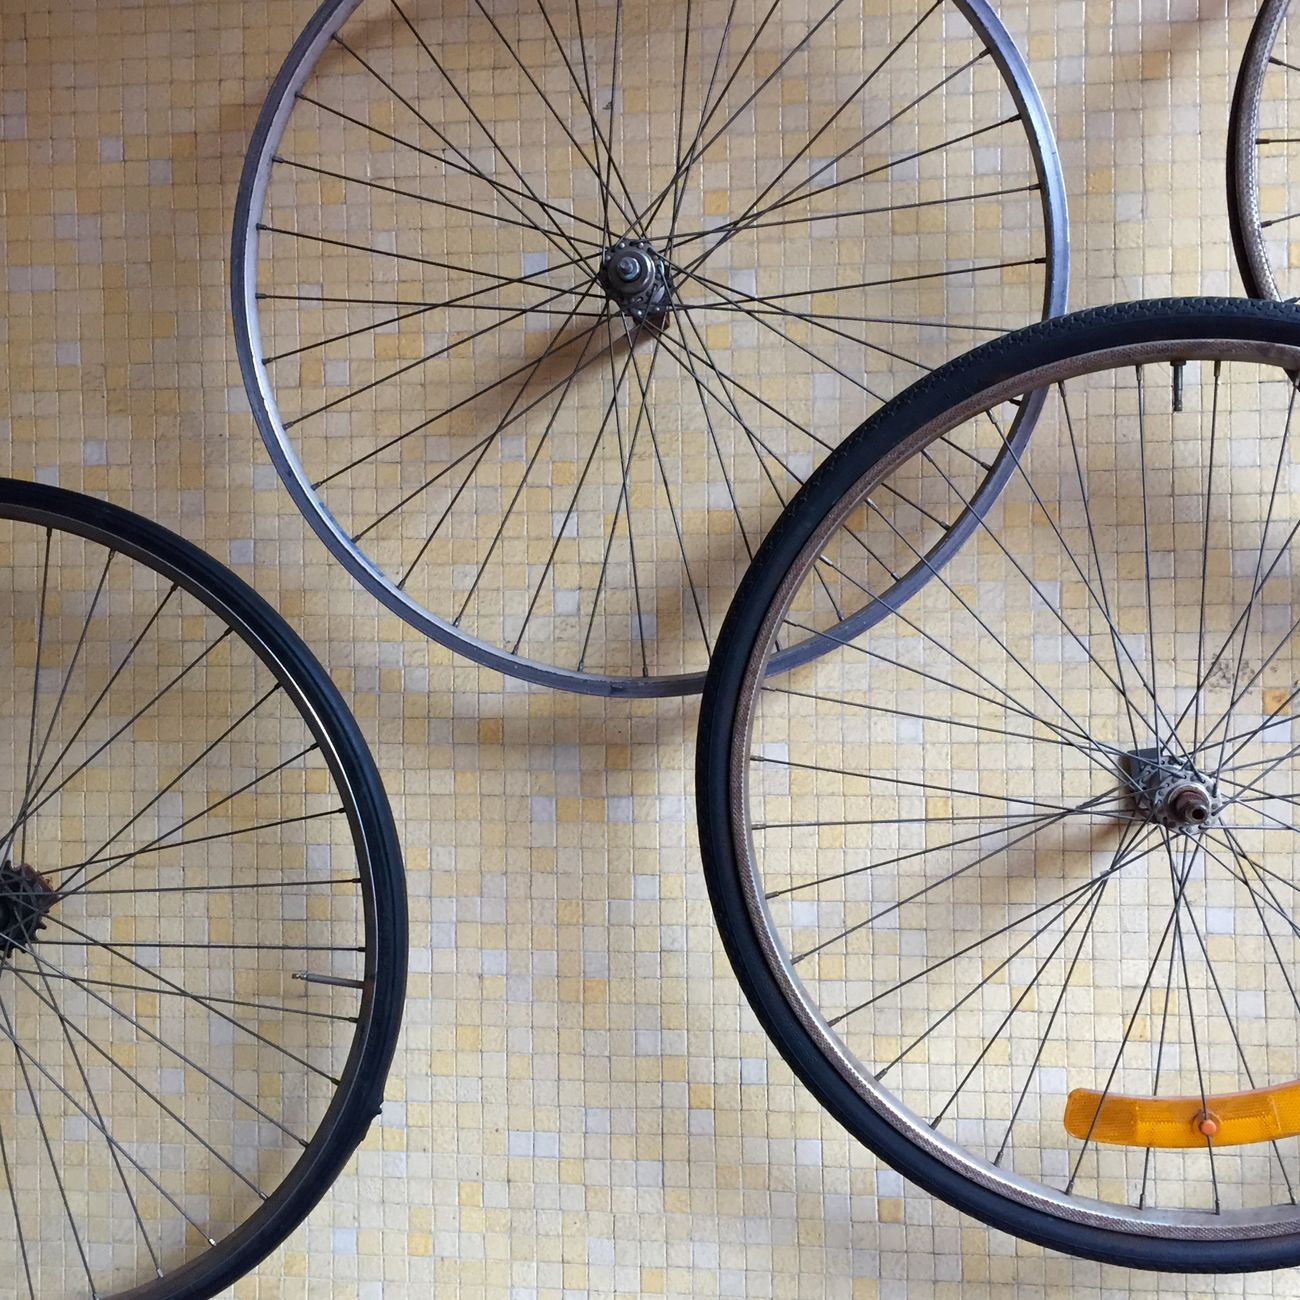 Bicycles Vintage Oldbike Bicycle CreativePhotographer Light And Shadow Circles Urban Urbanphotography Oldstyle